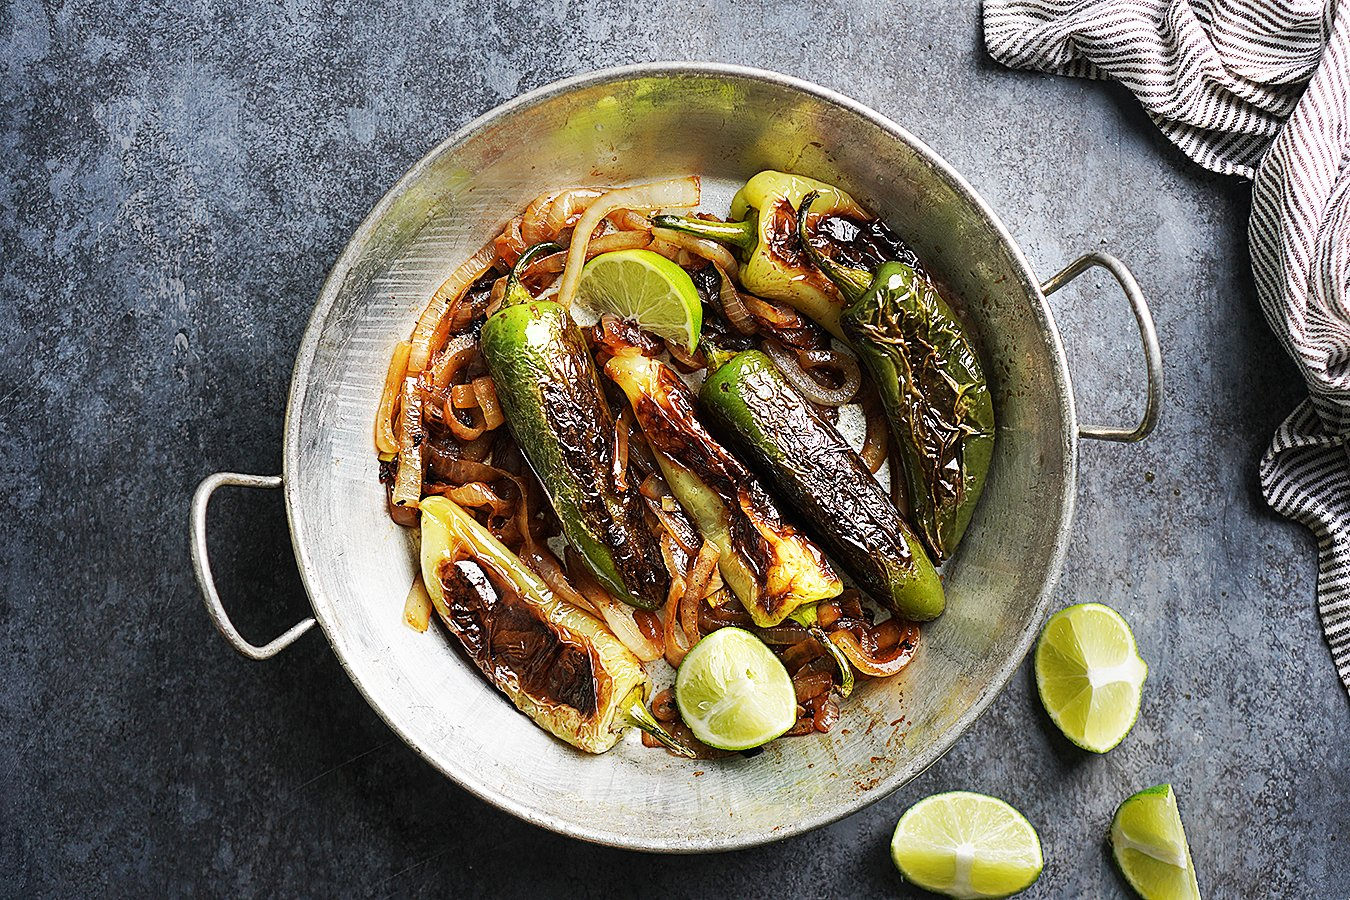 Blistered jalapeños, chile guerito peppers peppers and onions in a skillet